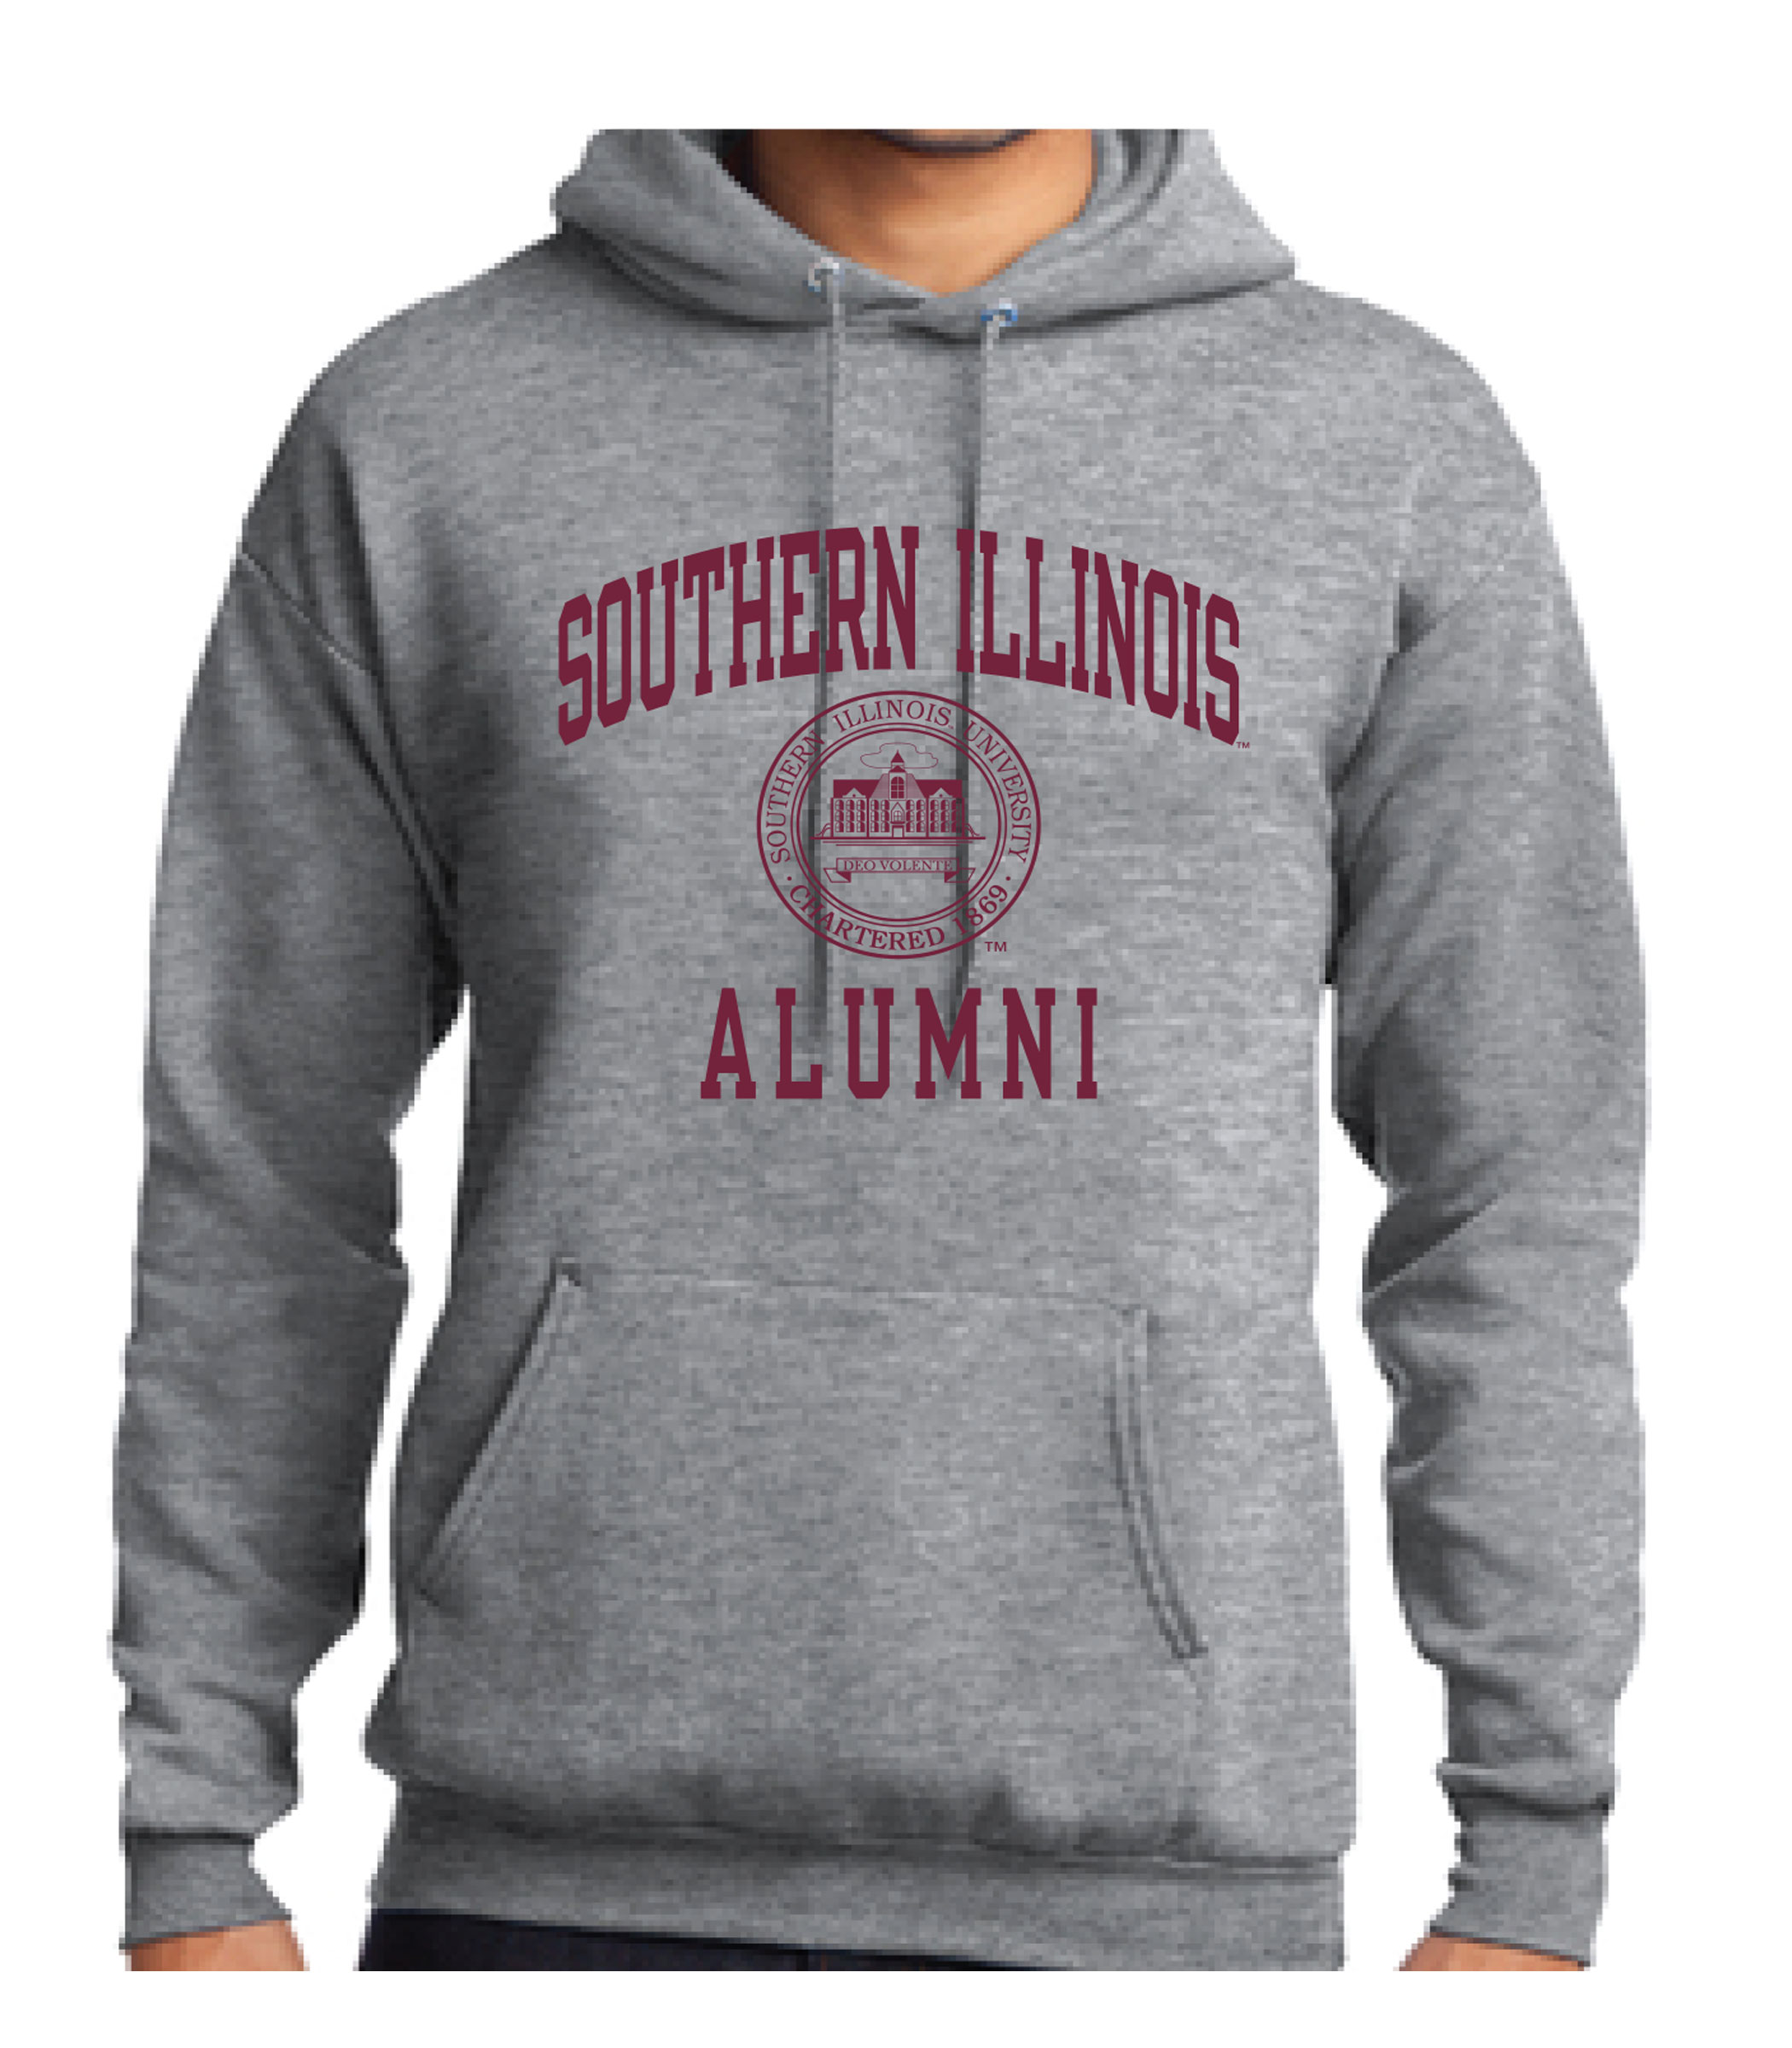 Image for the PROMO® OXFORD SOUTHERN ILLINOIS ALUMNI SEAL HOOD product